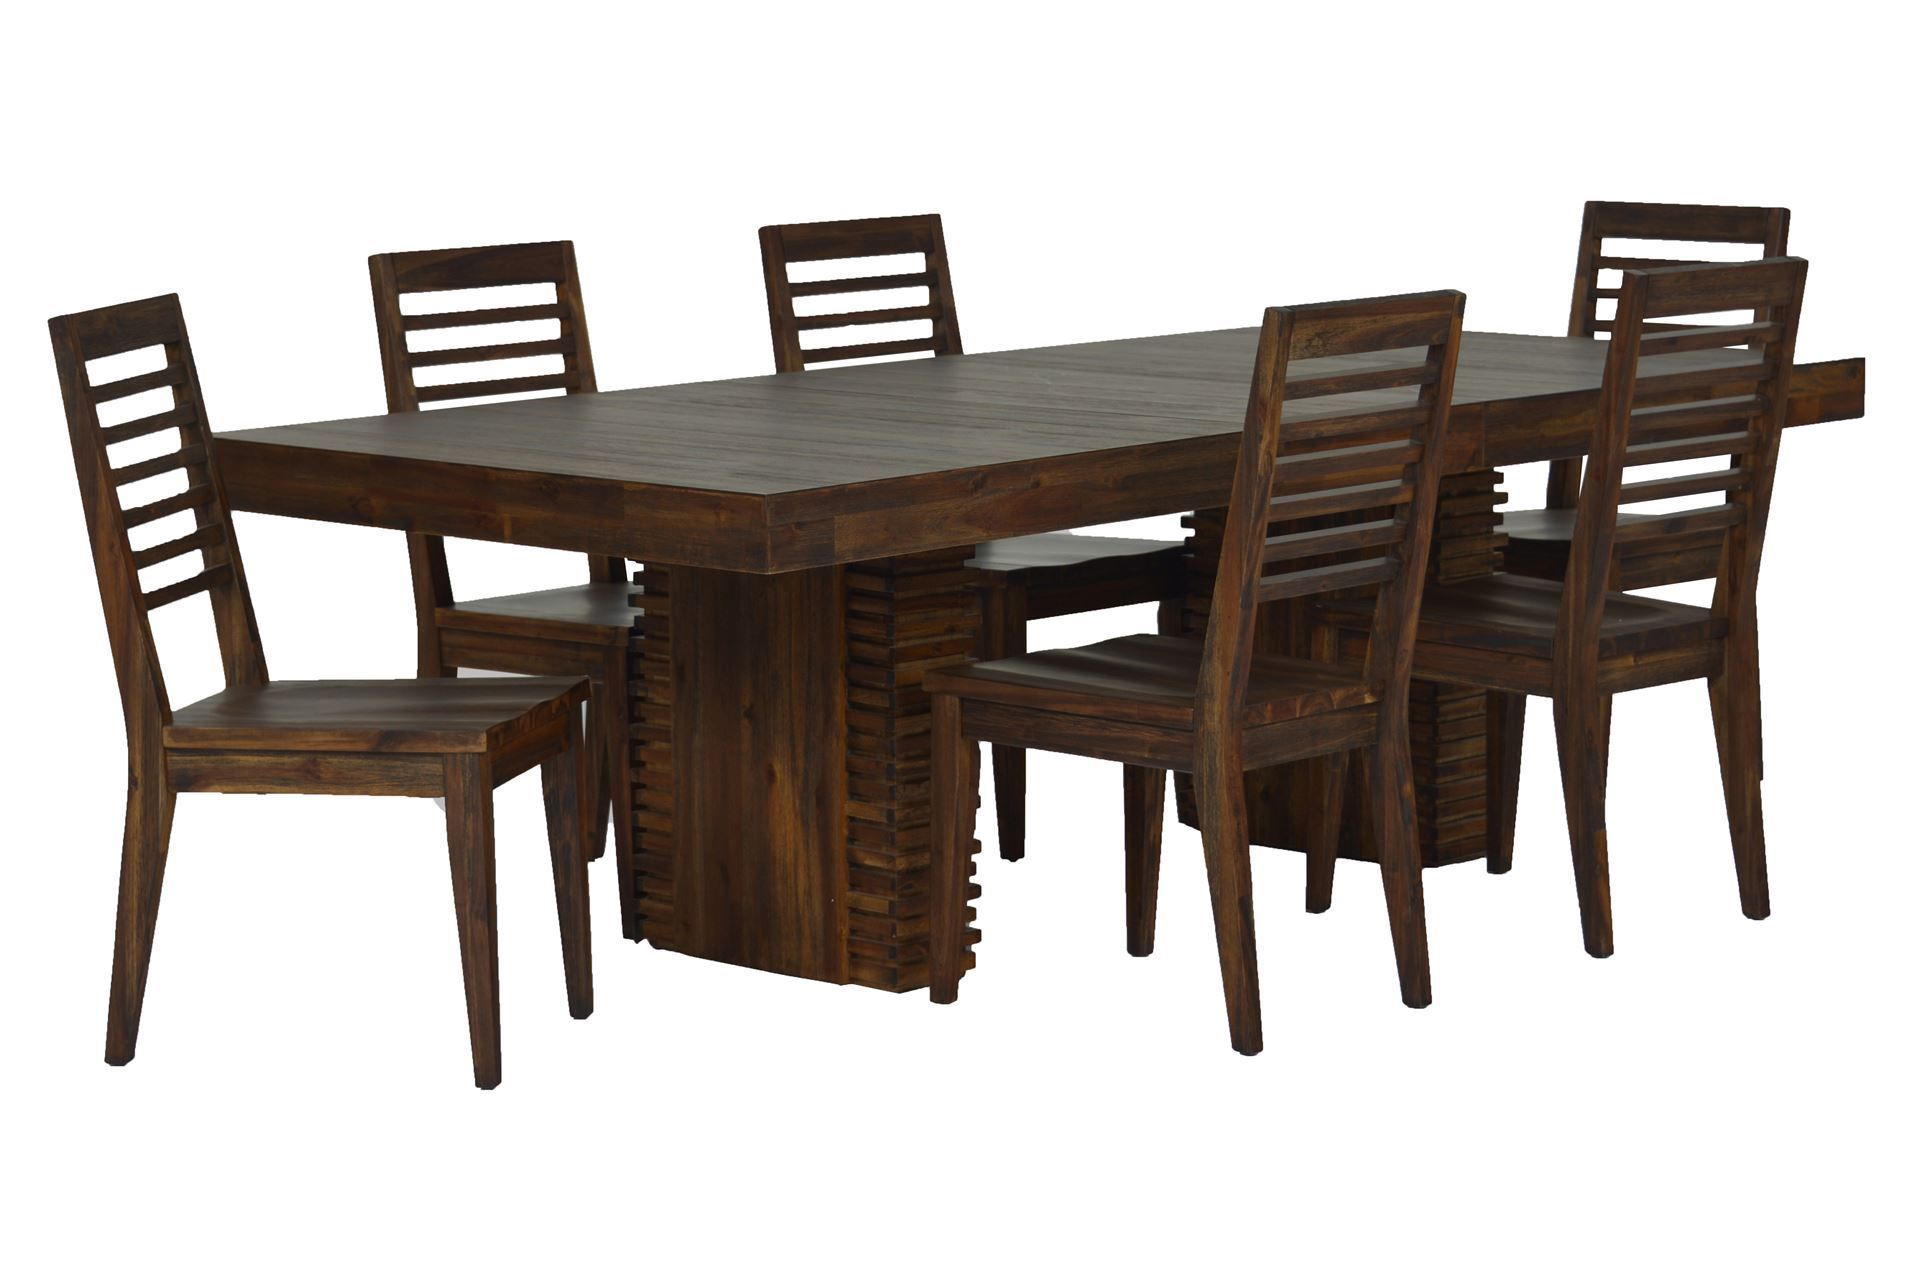 teagan 7 piece extension dining set | extensions, living spaces